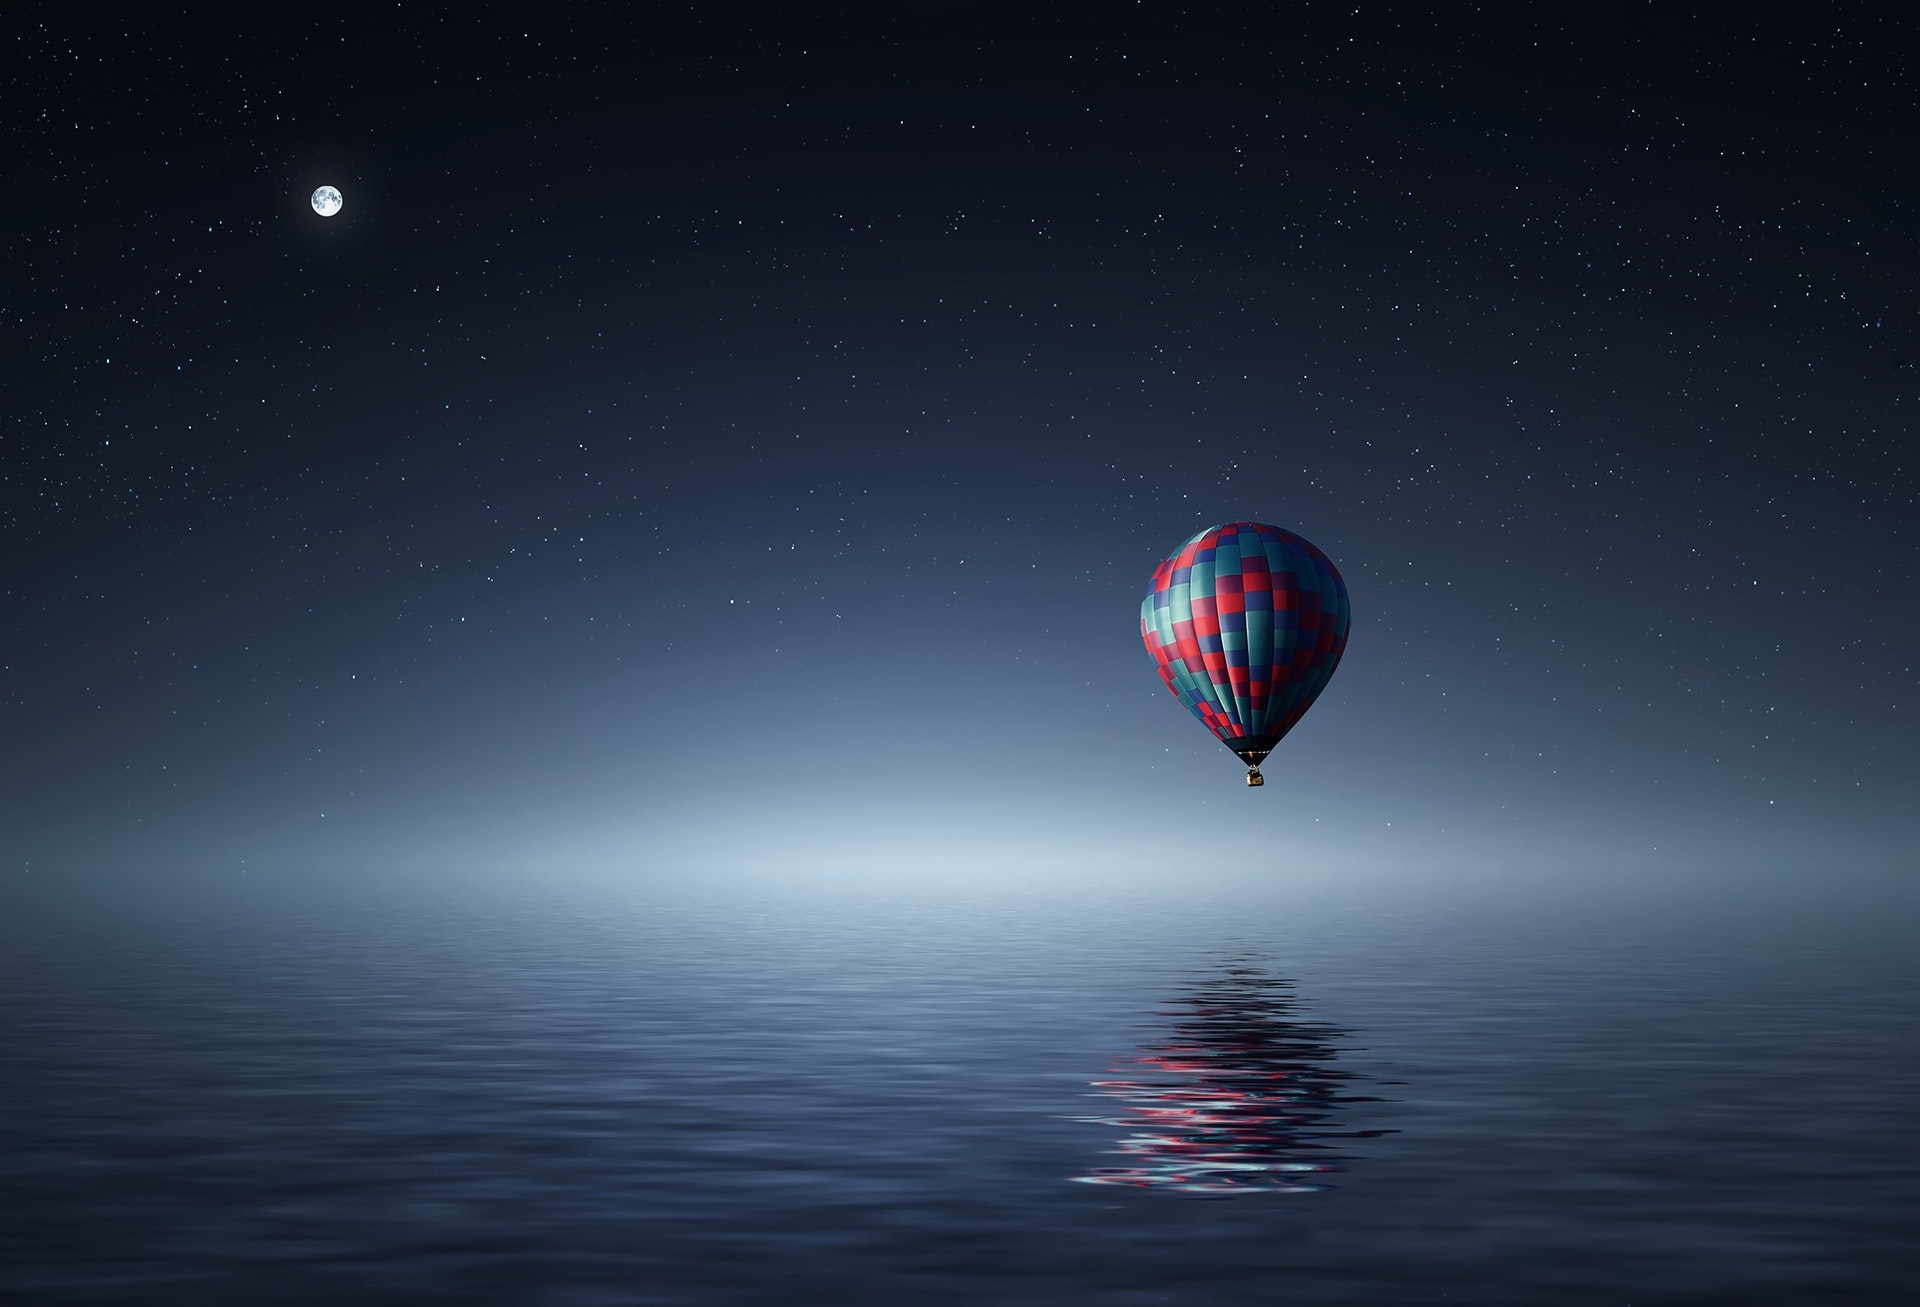 red-and-blue-hot-air-balloon-floating-on-air-on-body-of-36487